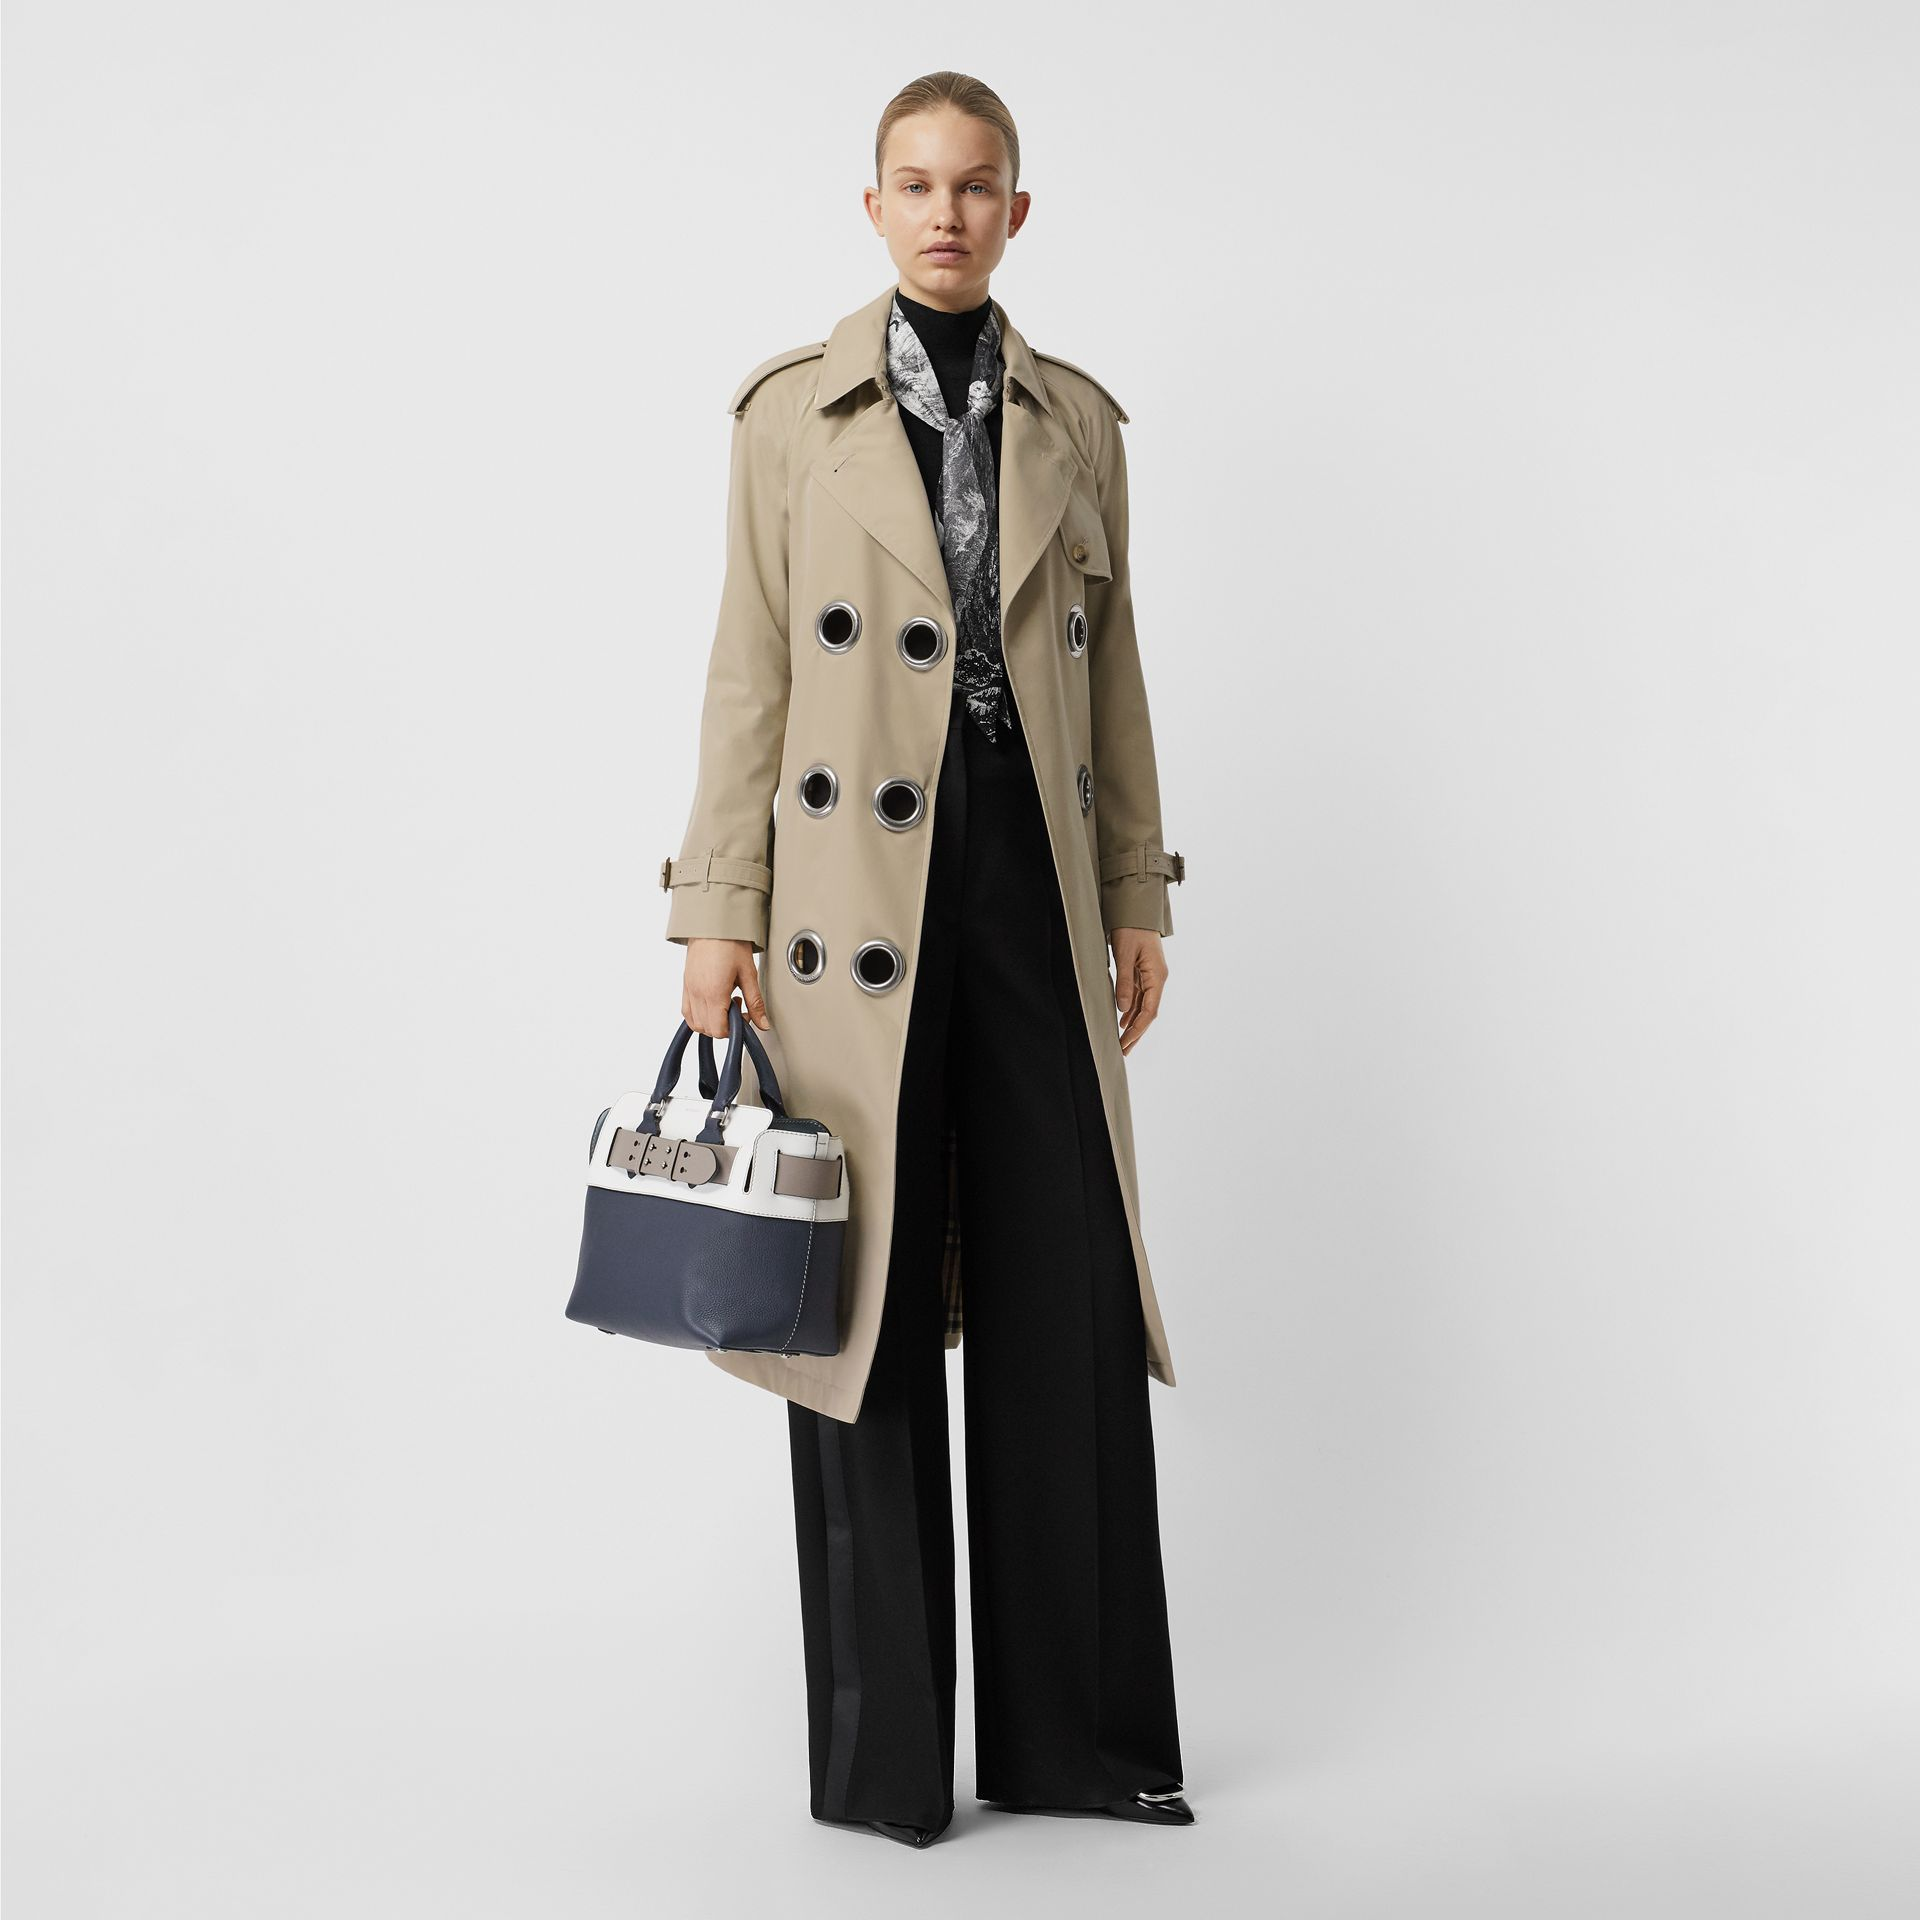 Grommet Detail Cotton Gabardine Trench Coat in Stone - Women | Burberry - gallery image 0